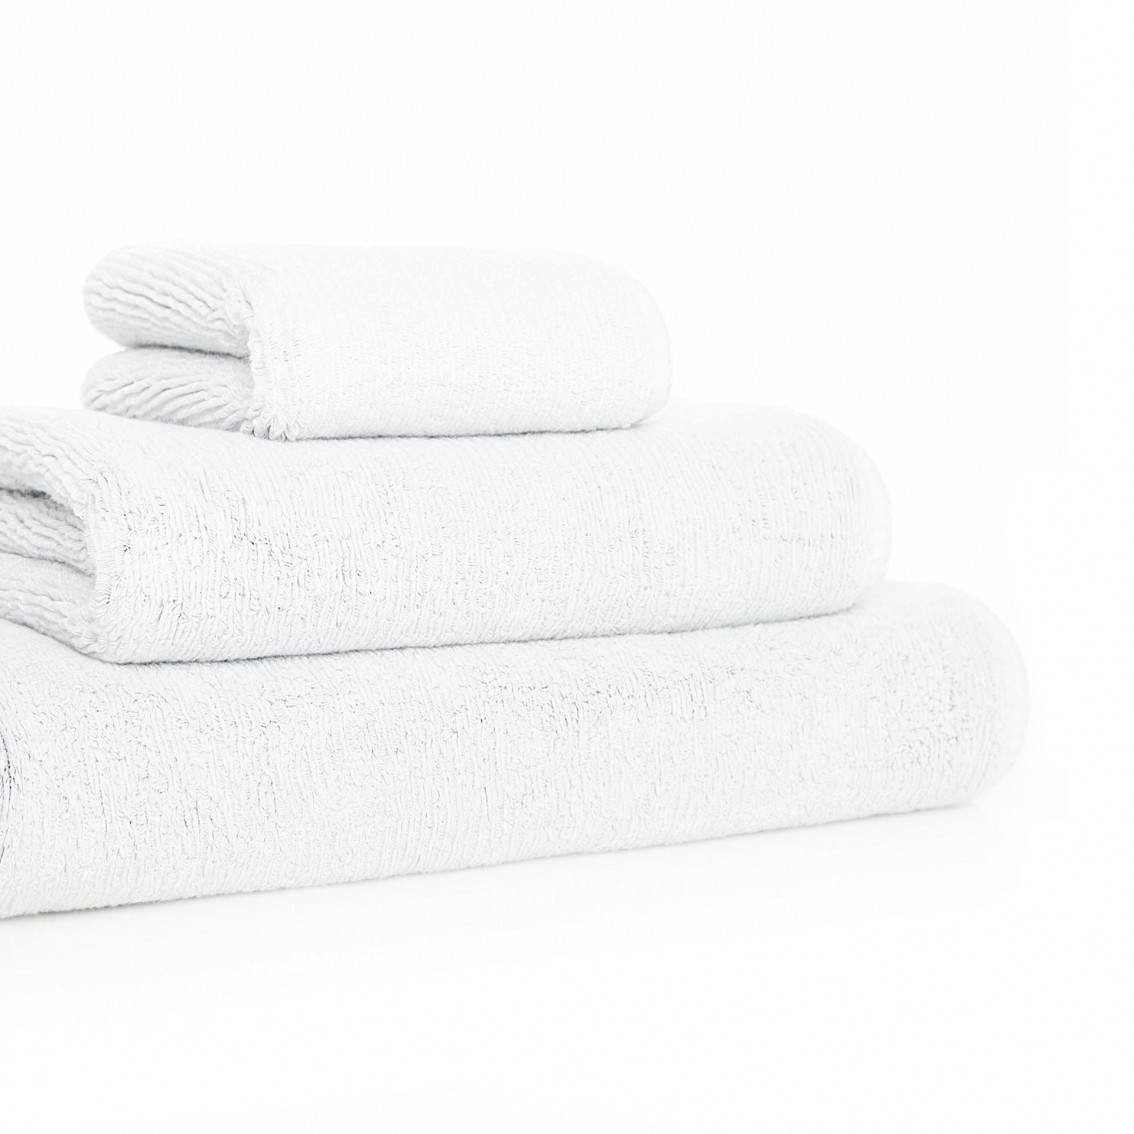 DOUBLE TONE TOWELS